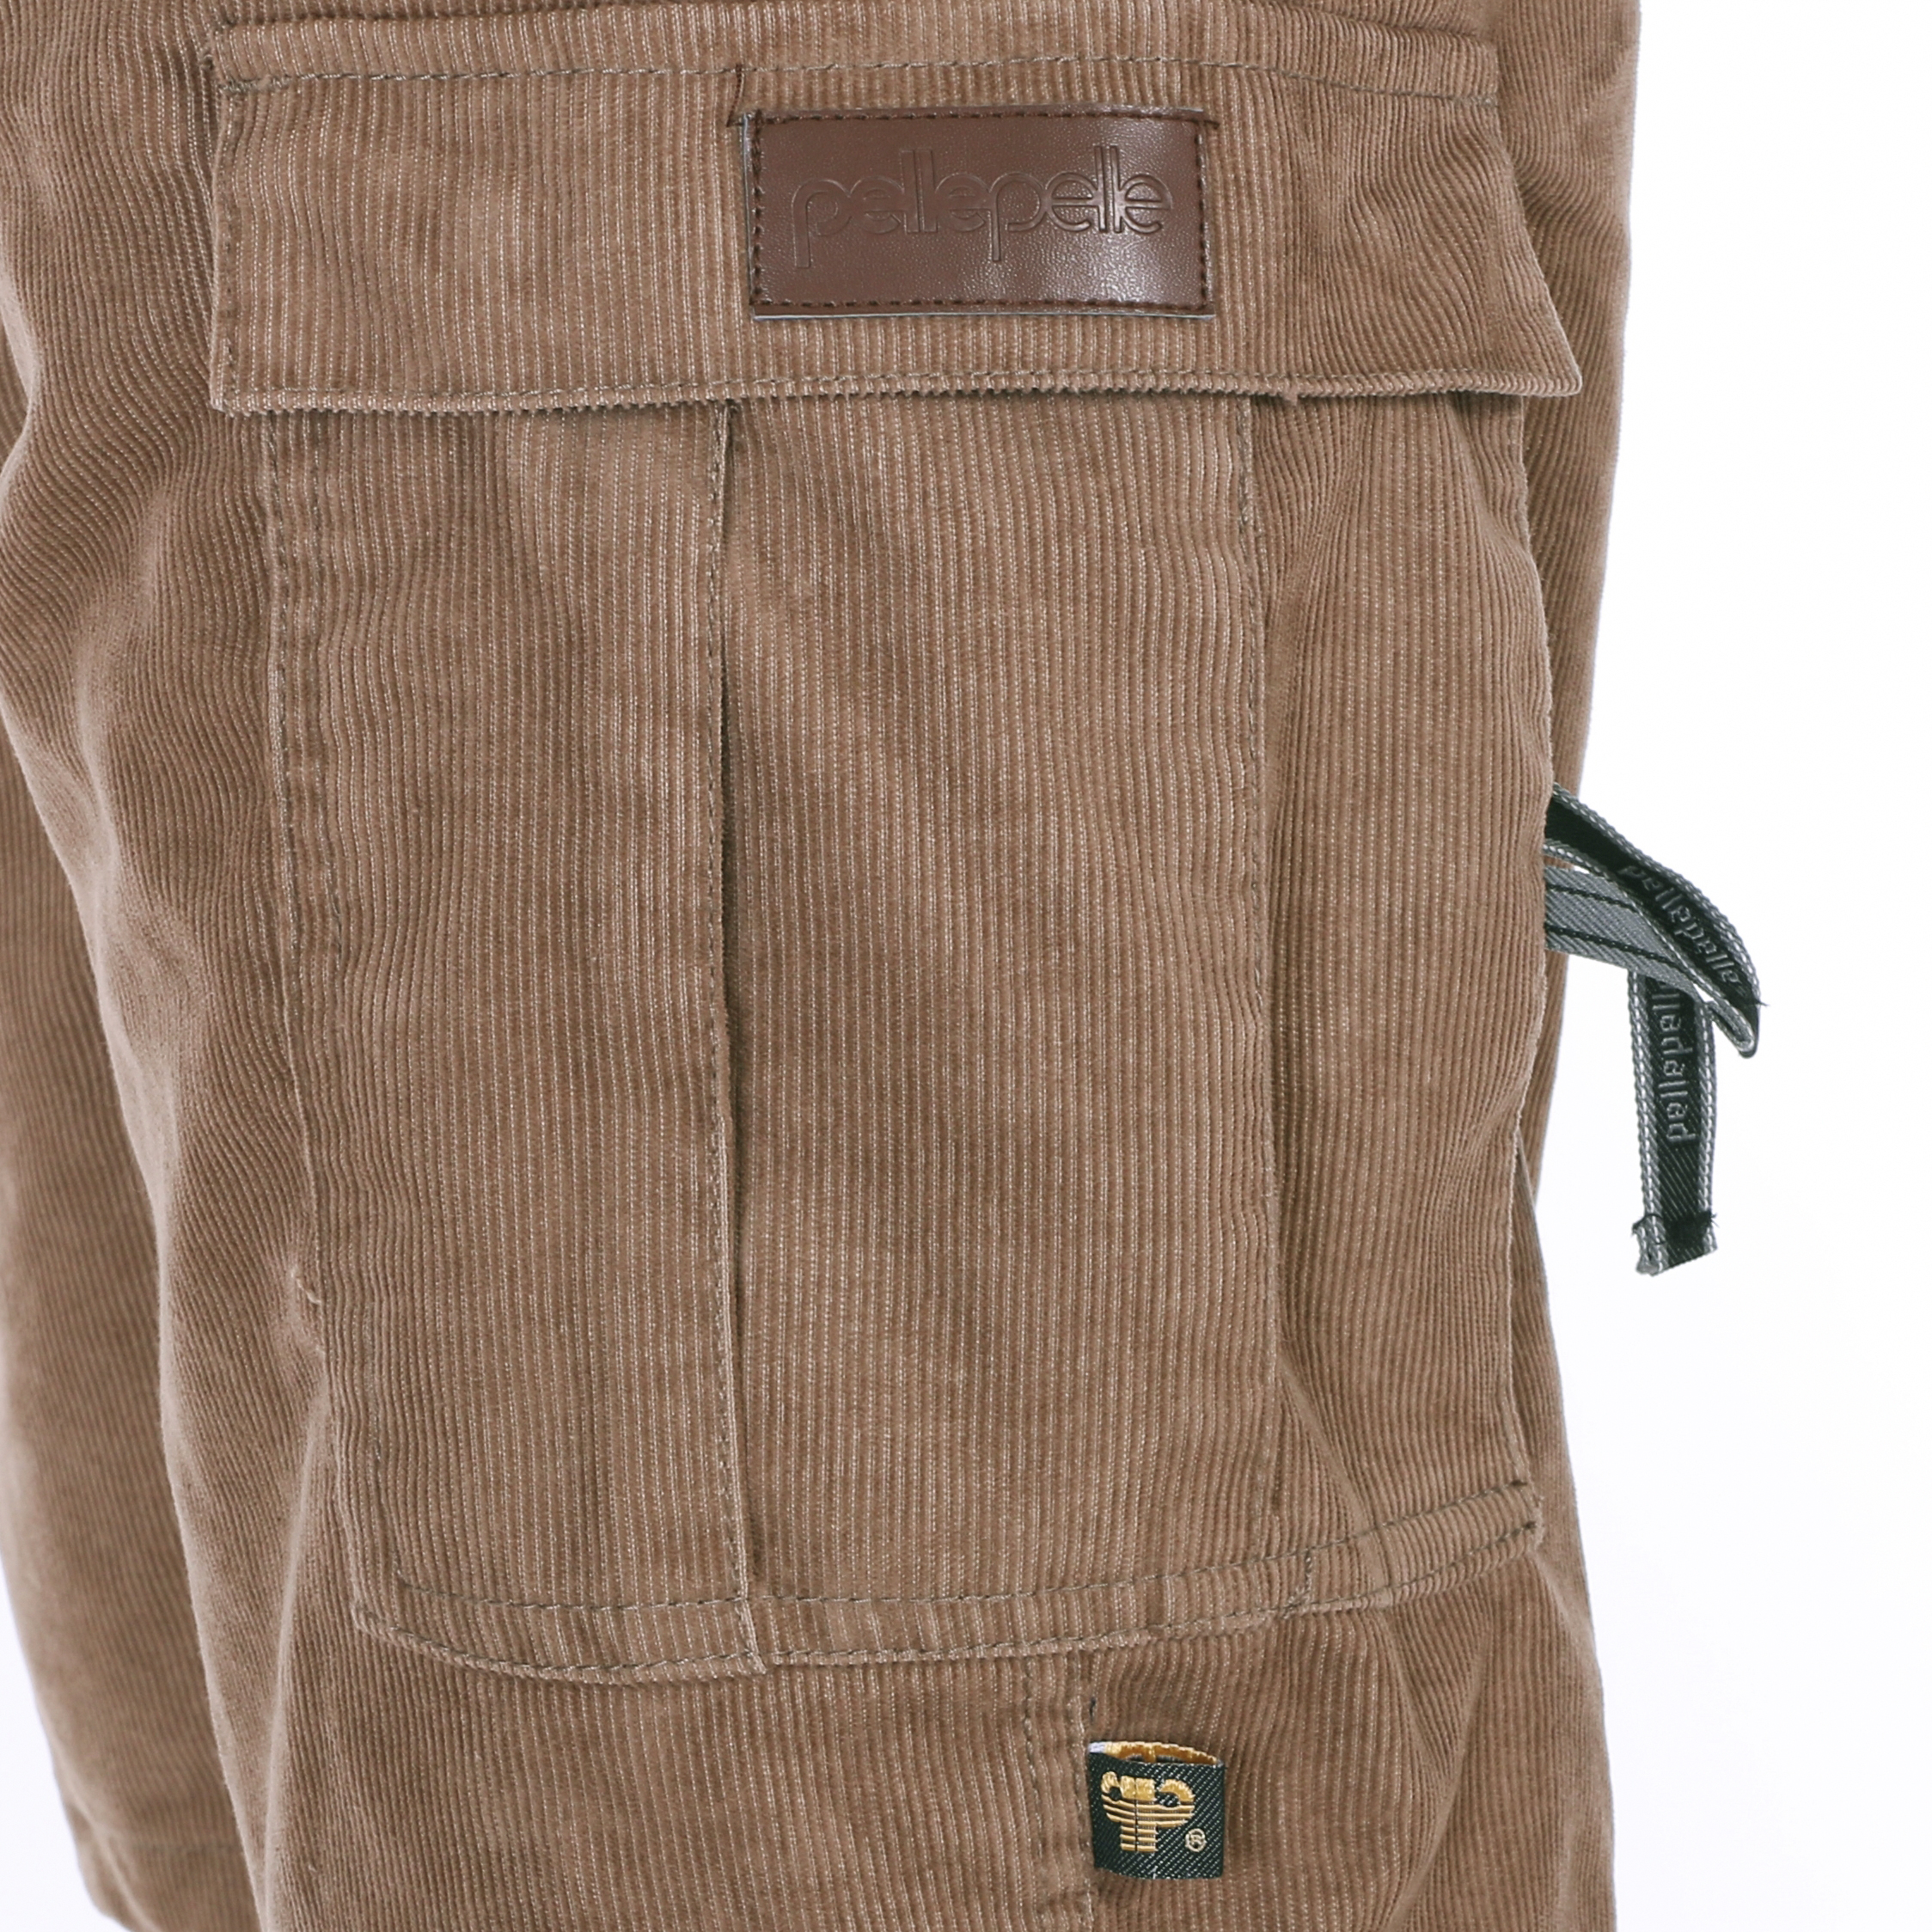 Mens Corduroy Cargo Pants - Pant So